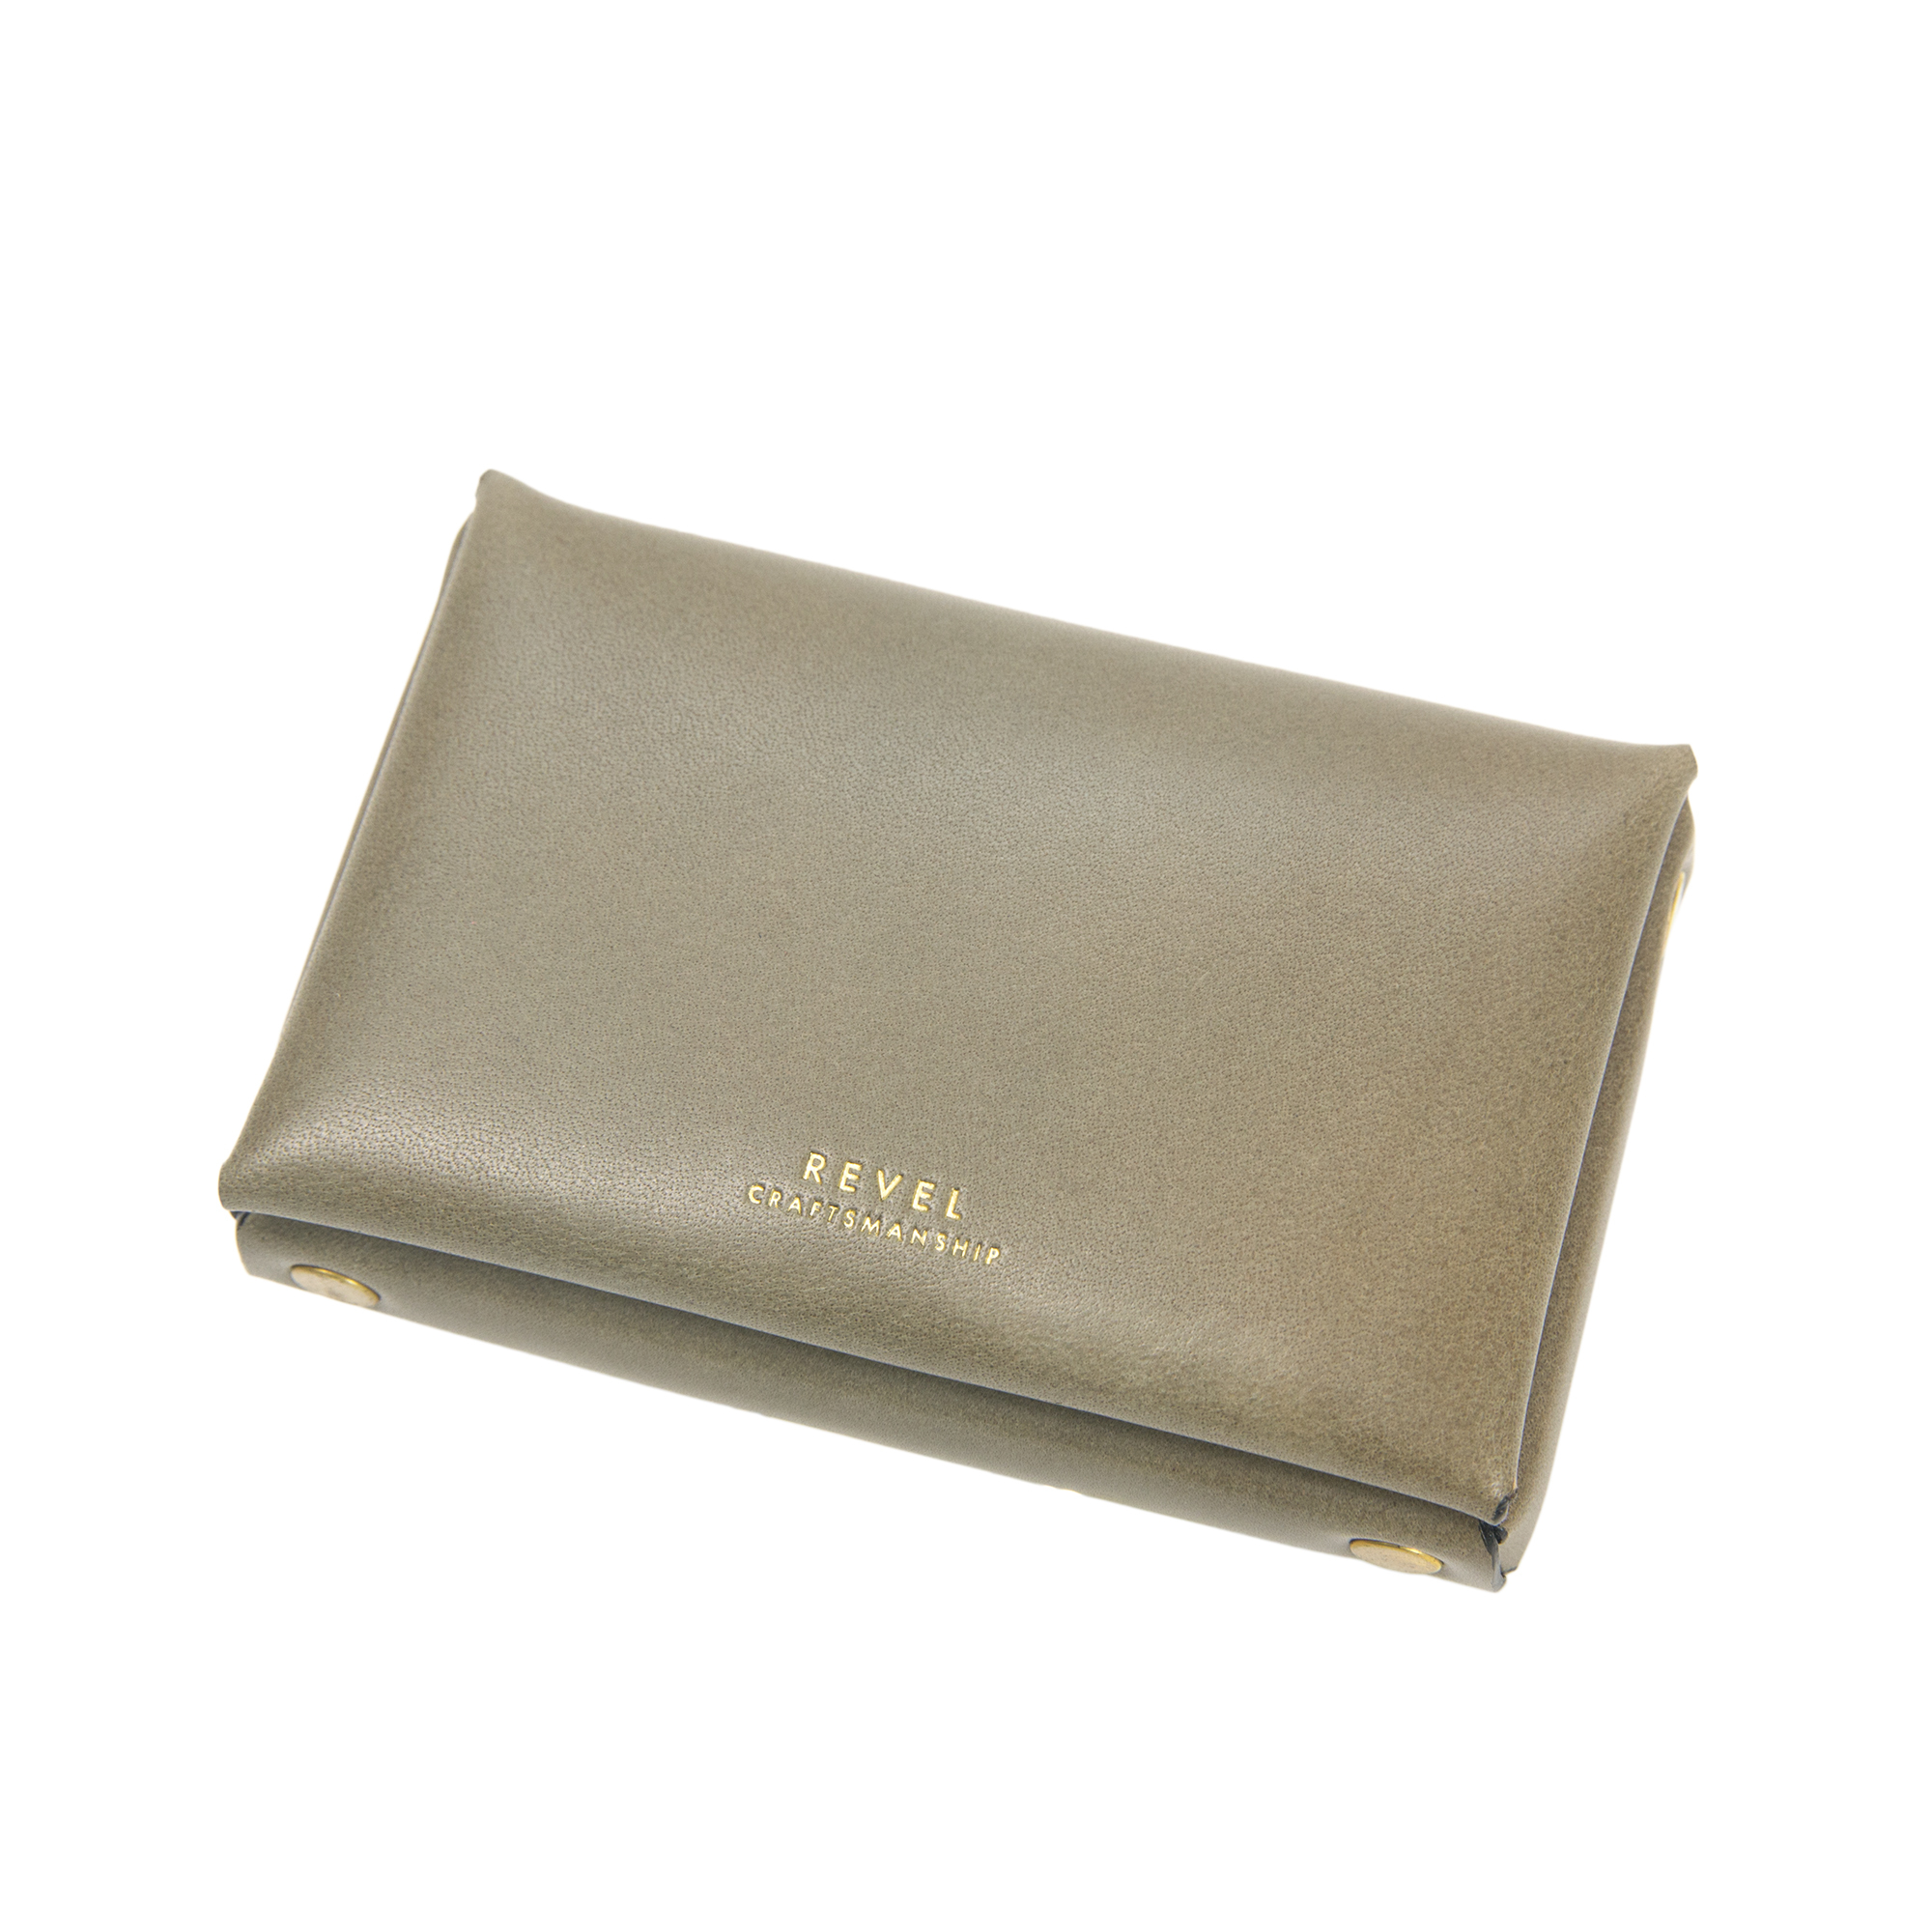 CARD CASE GRAY